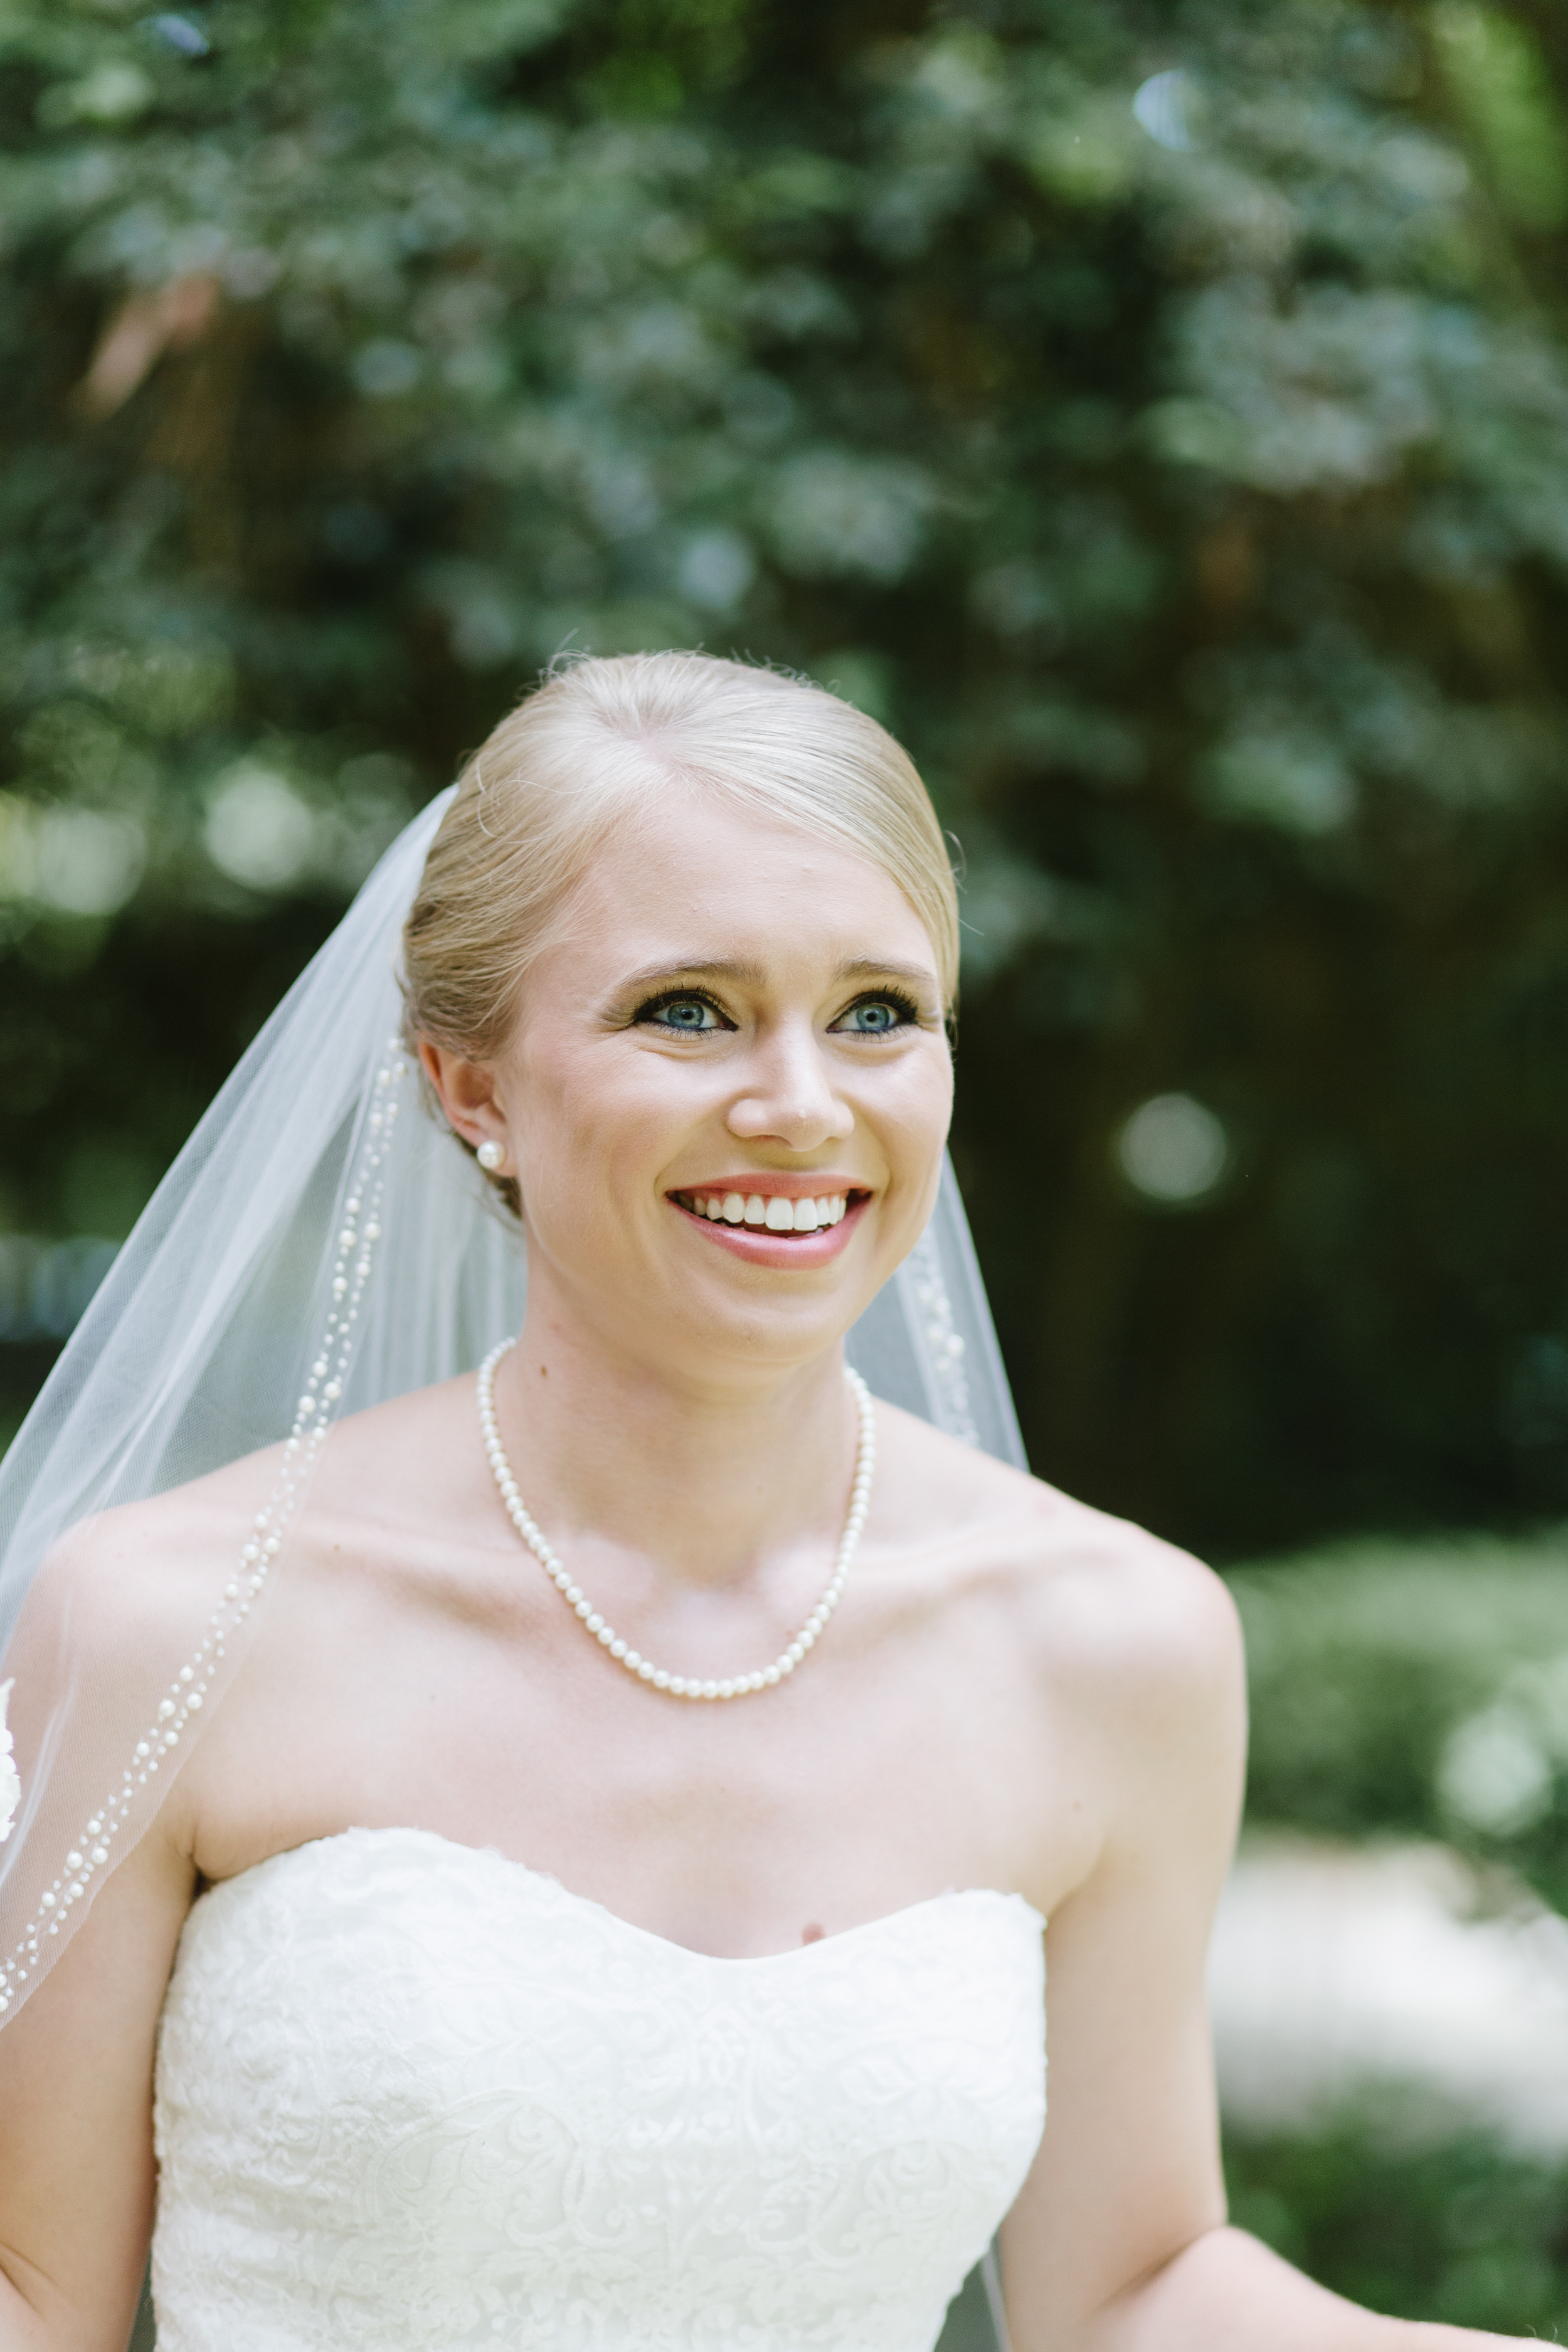 Dragonfly Photography by Miranda | Bridal Portrait Photographer in Baldwin County, Fairhope, Mobile, Orange Beach, Alabama Weddings